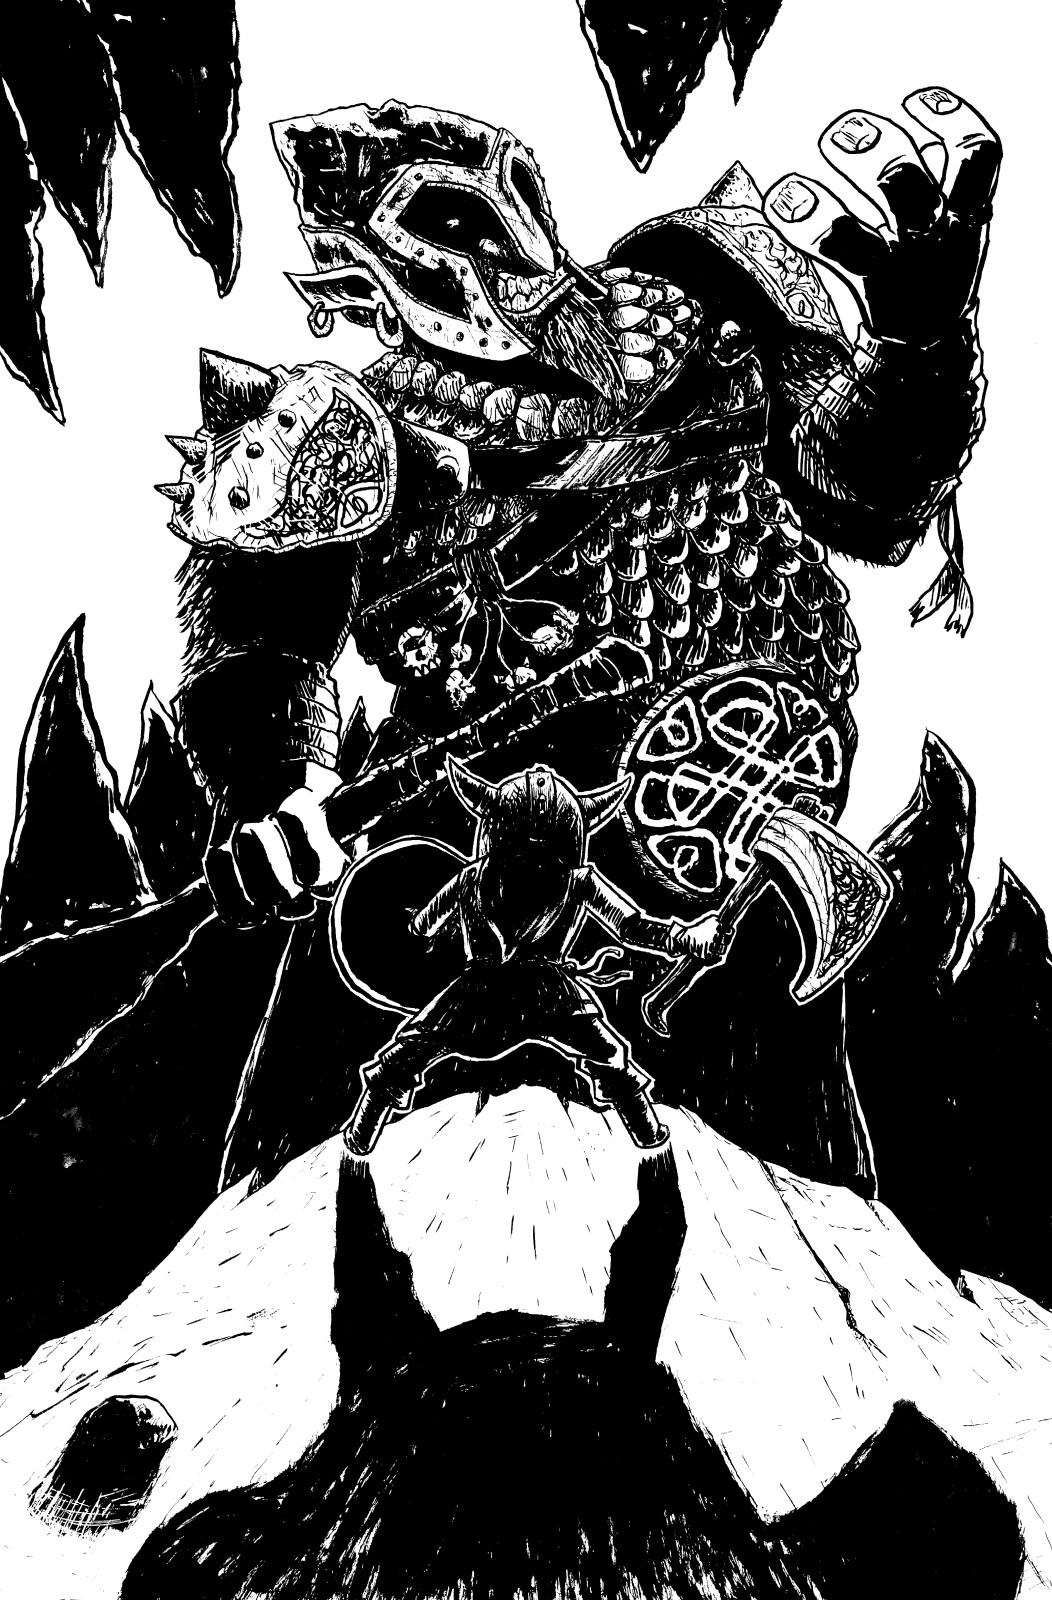 Rune vs. The Troll King. Concept illustration for an upcoming comic written and illustrated by me.